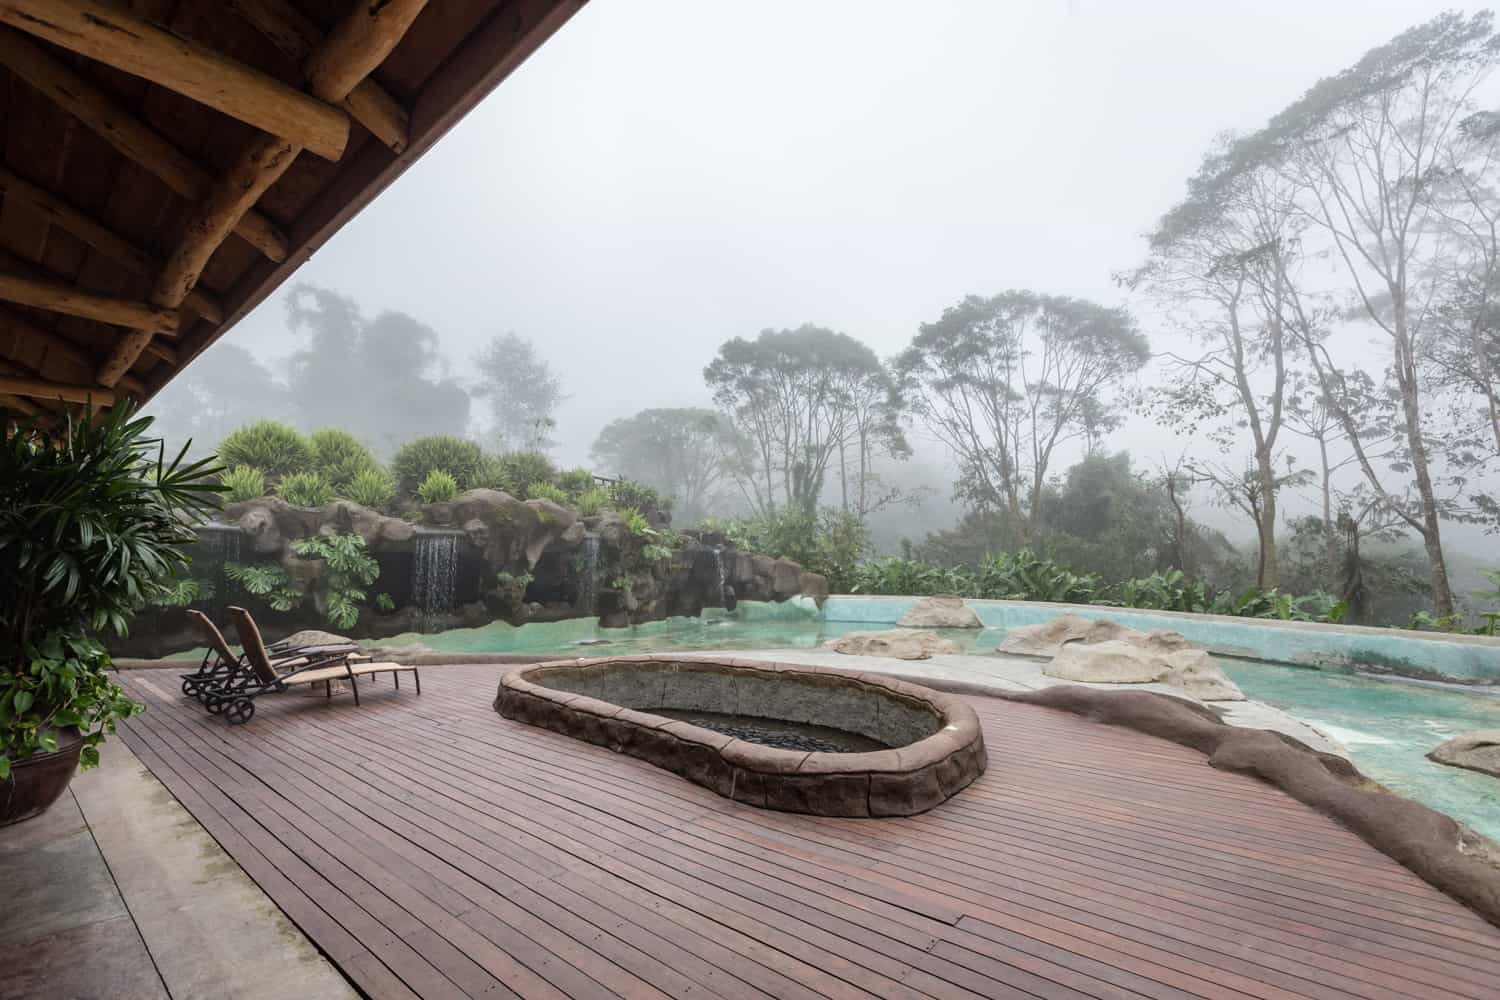 Big Trout Bar pool deck with hot tub with view of cloud forest.